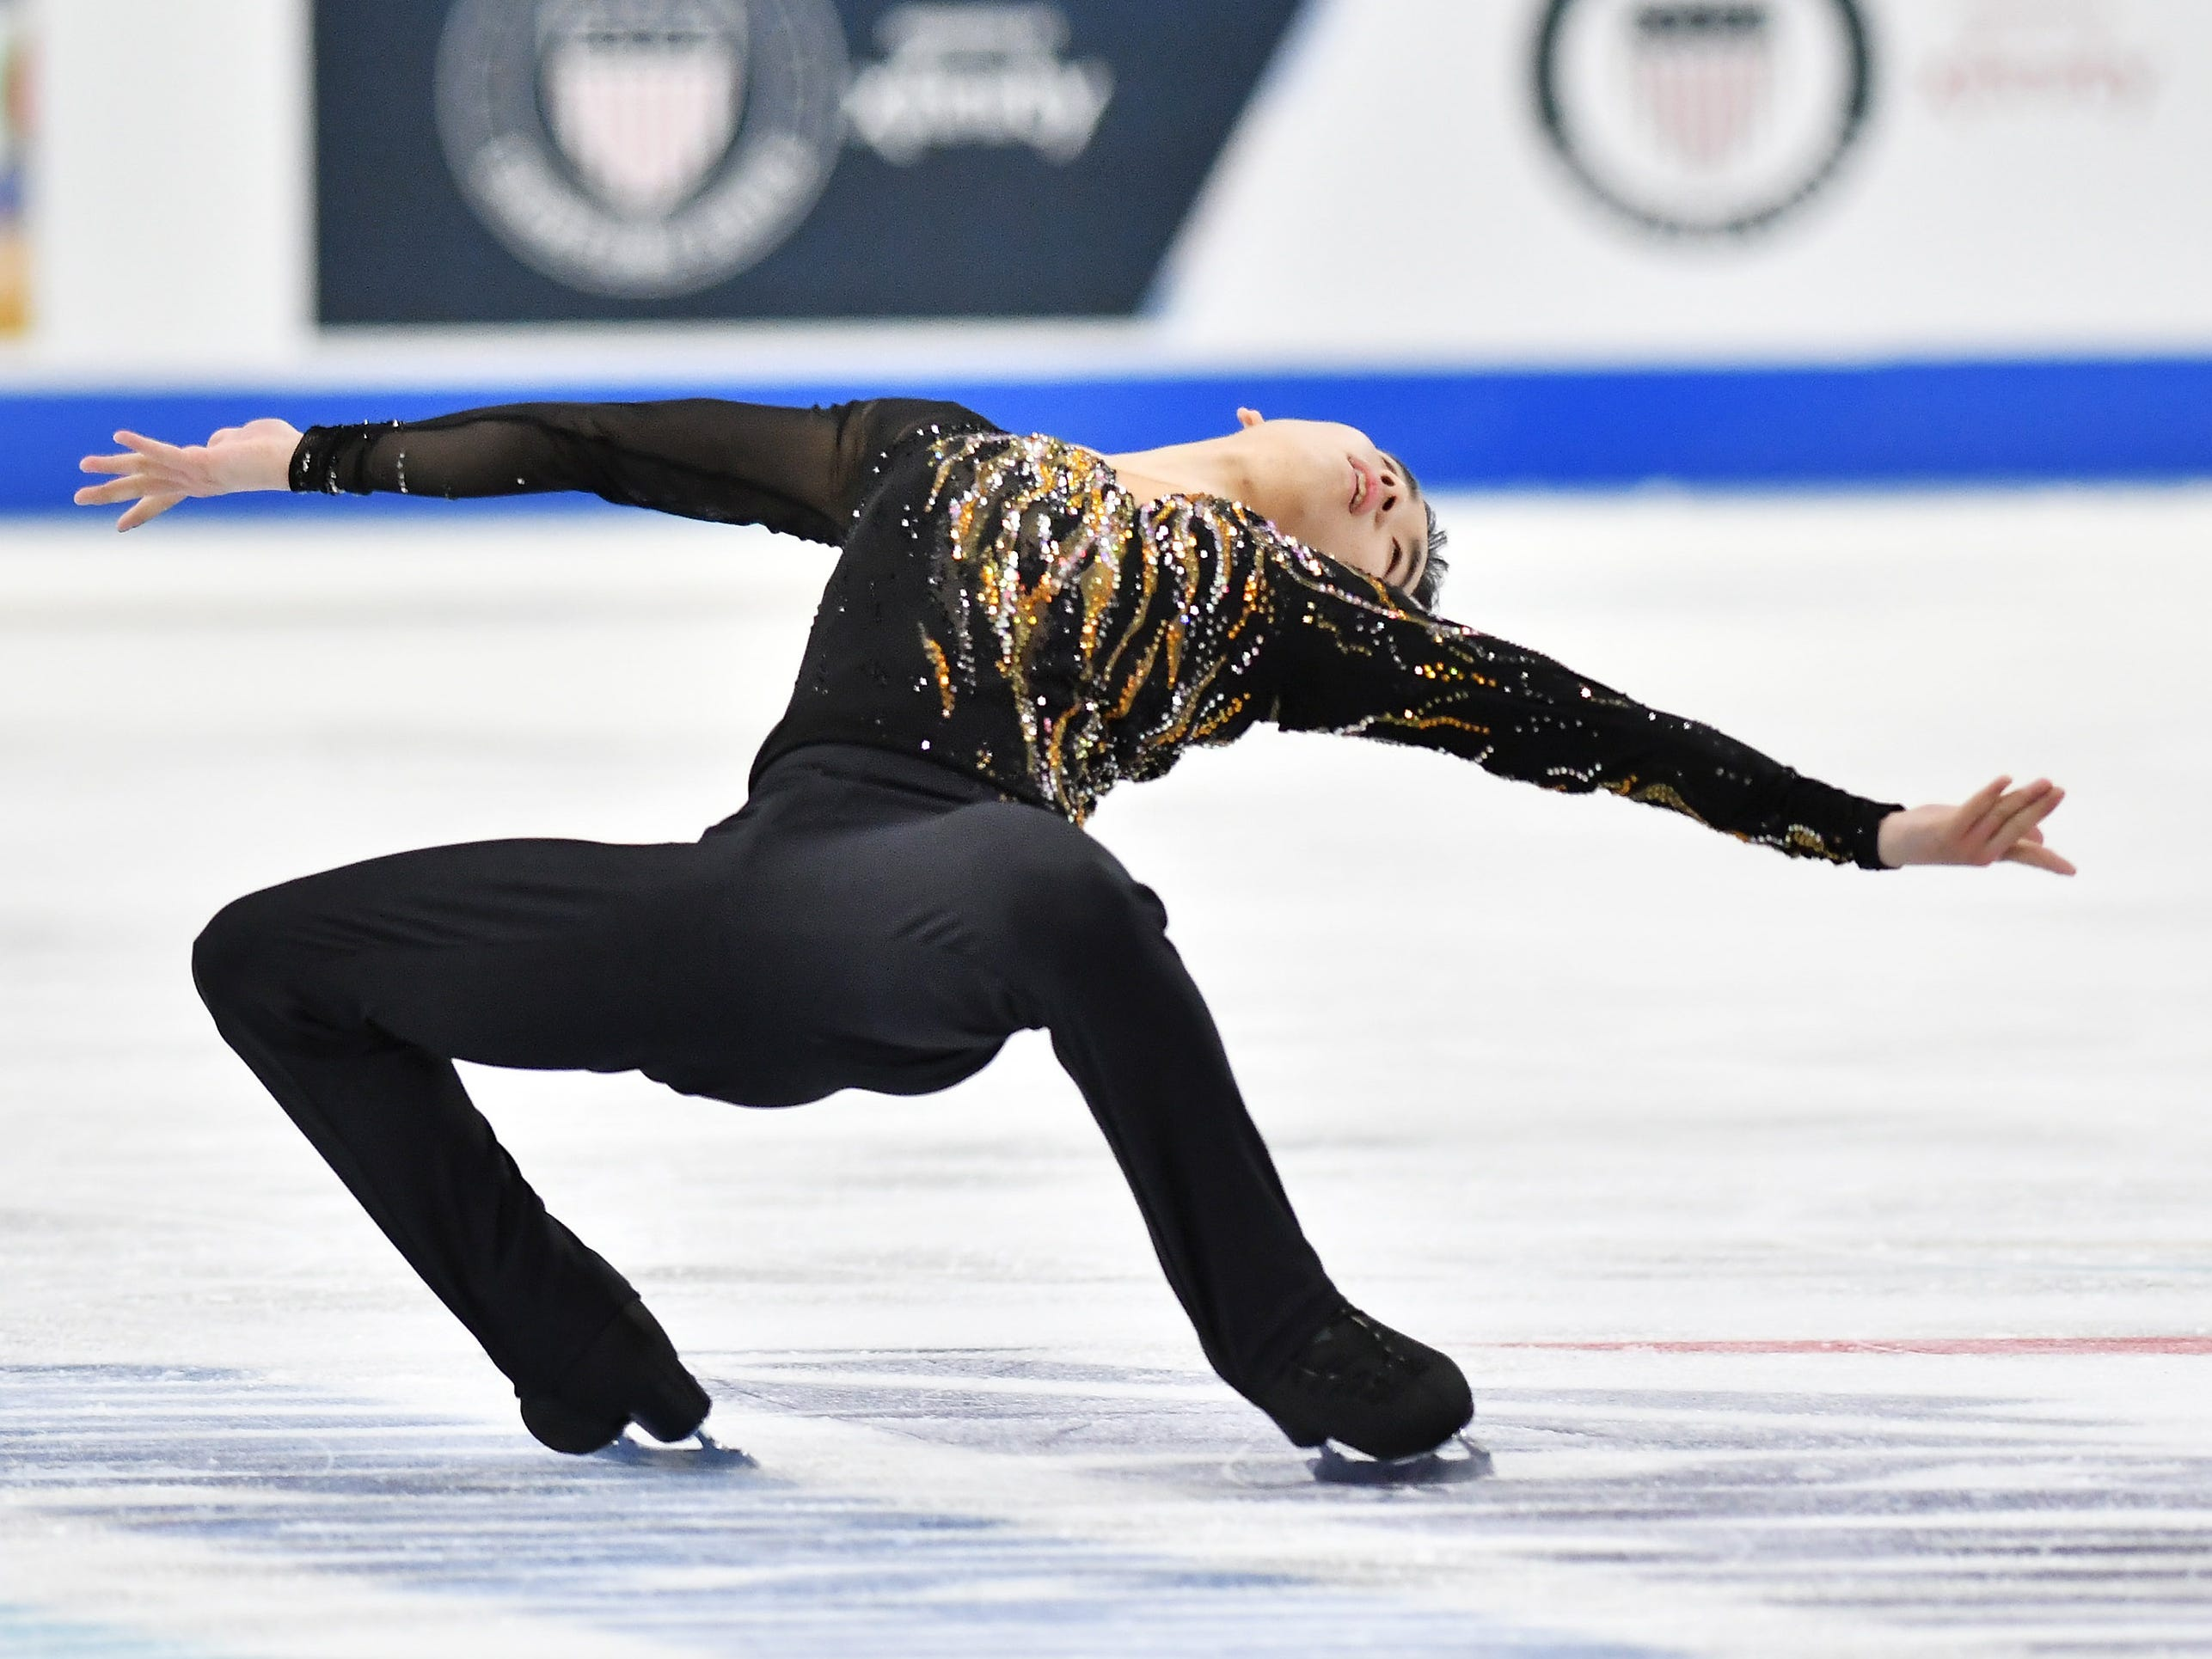 Tomoki Hiwatashi skates in the men's free skate.